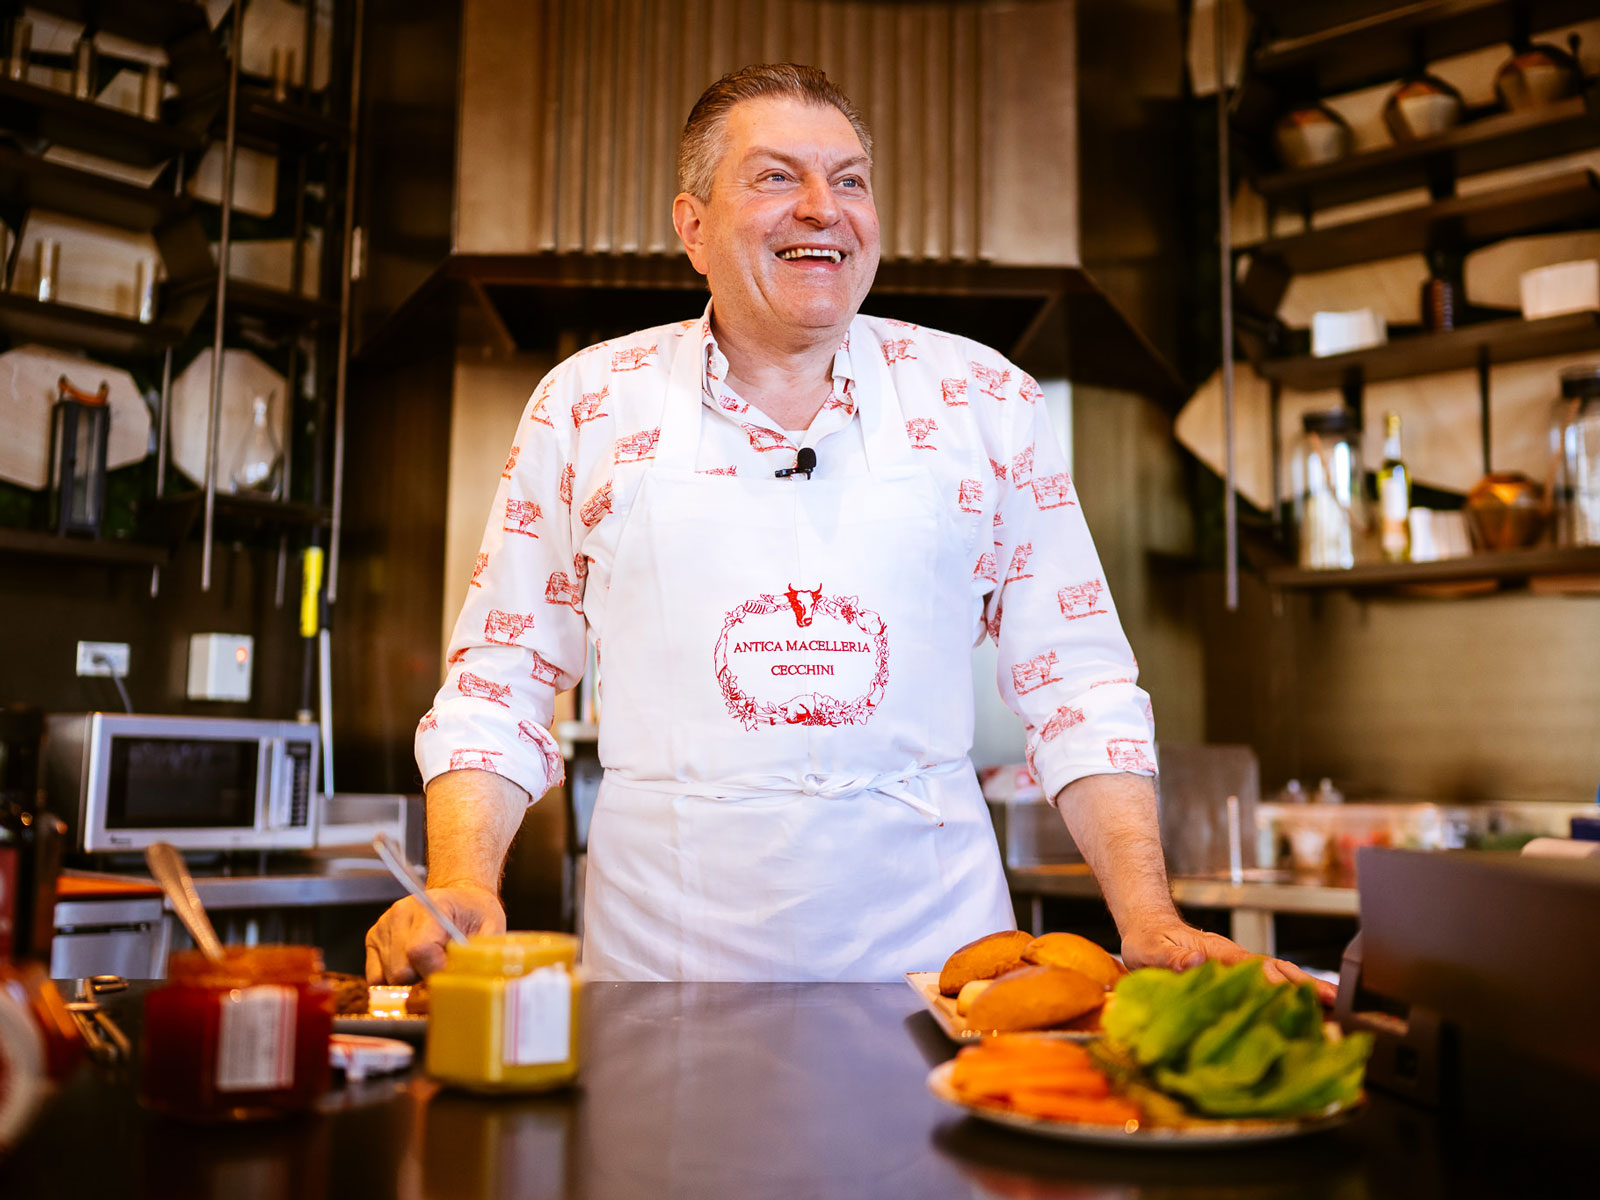 Legendary Italian Butcher Dario Cecchini Opens Steakhouse in The Bahamas